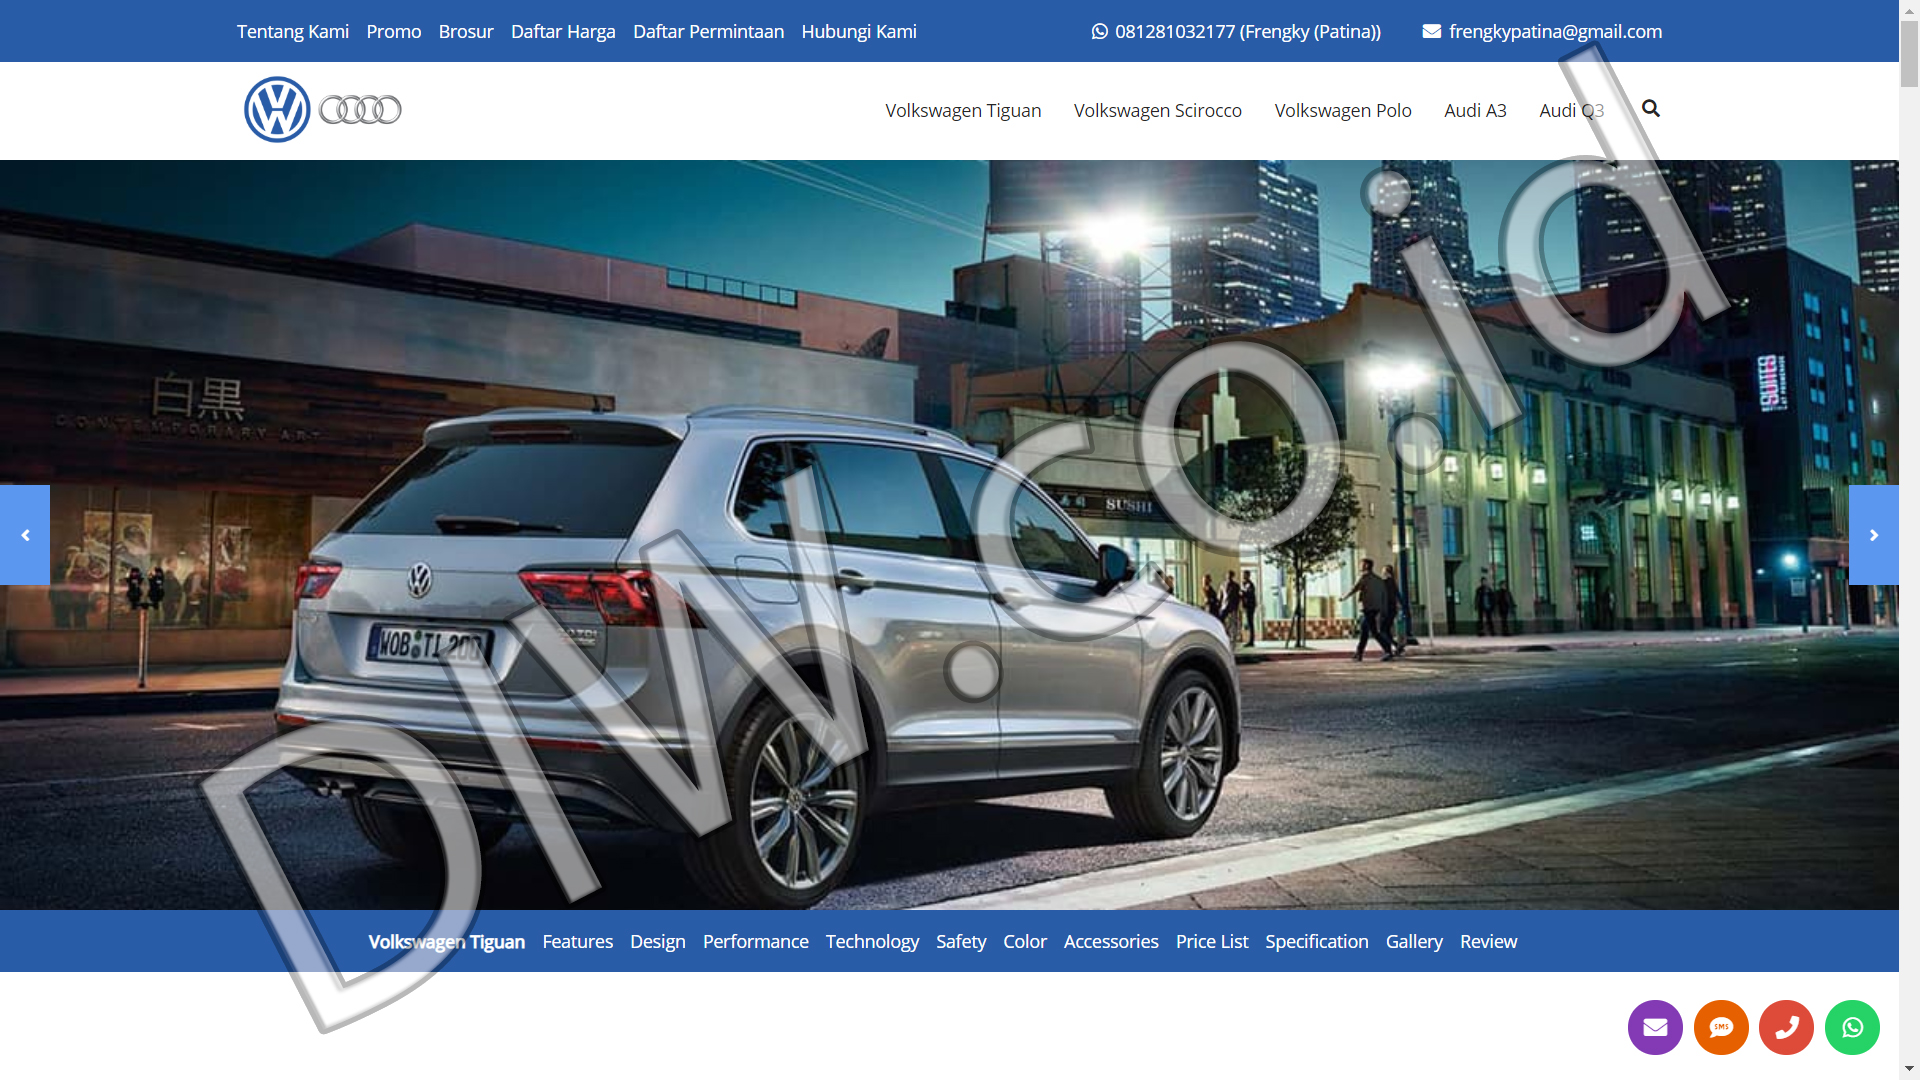 Portfolio 4 - VW Audi BSD Jakarta - Andri Sunardi - Freelancer - Web Developer - CEO DIW.co.id